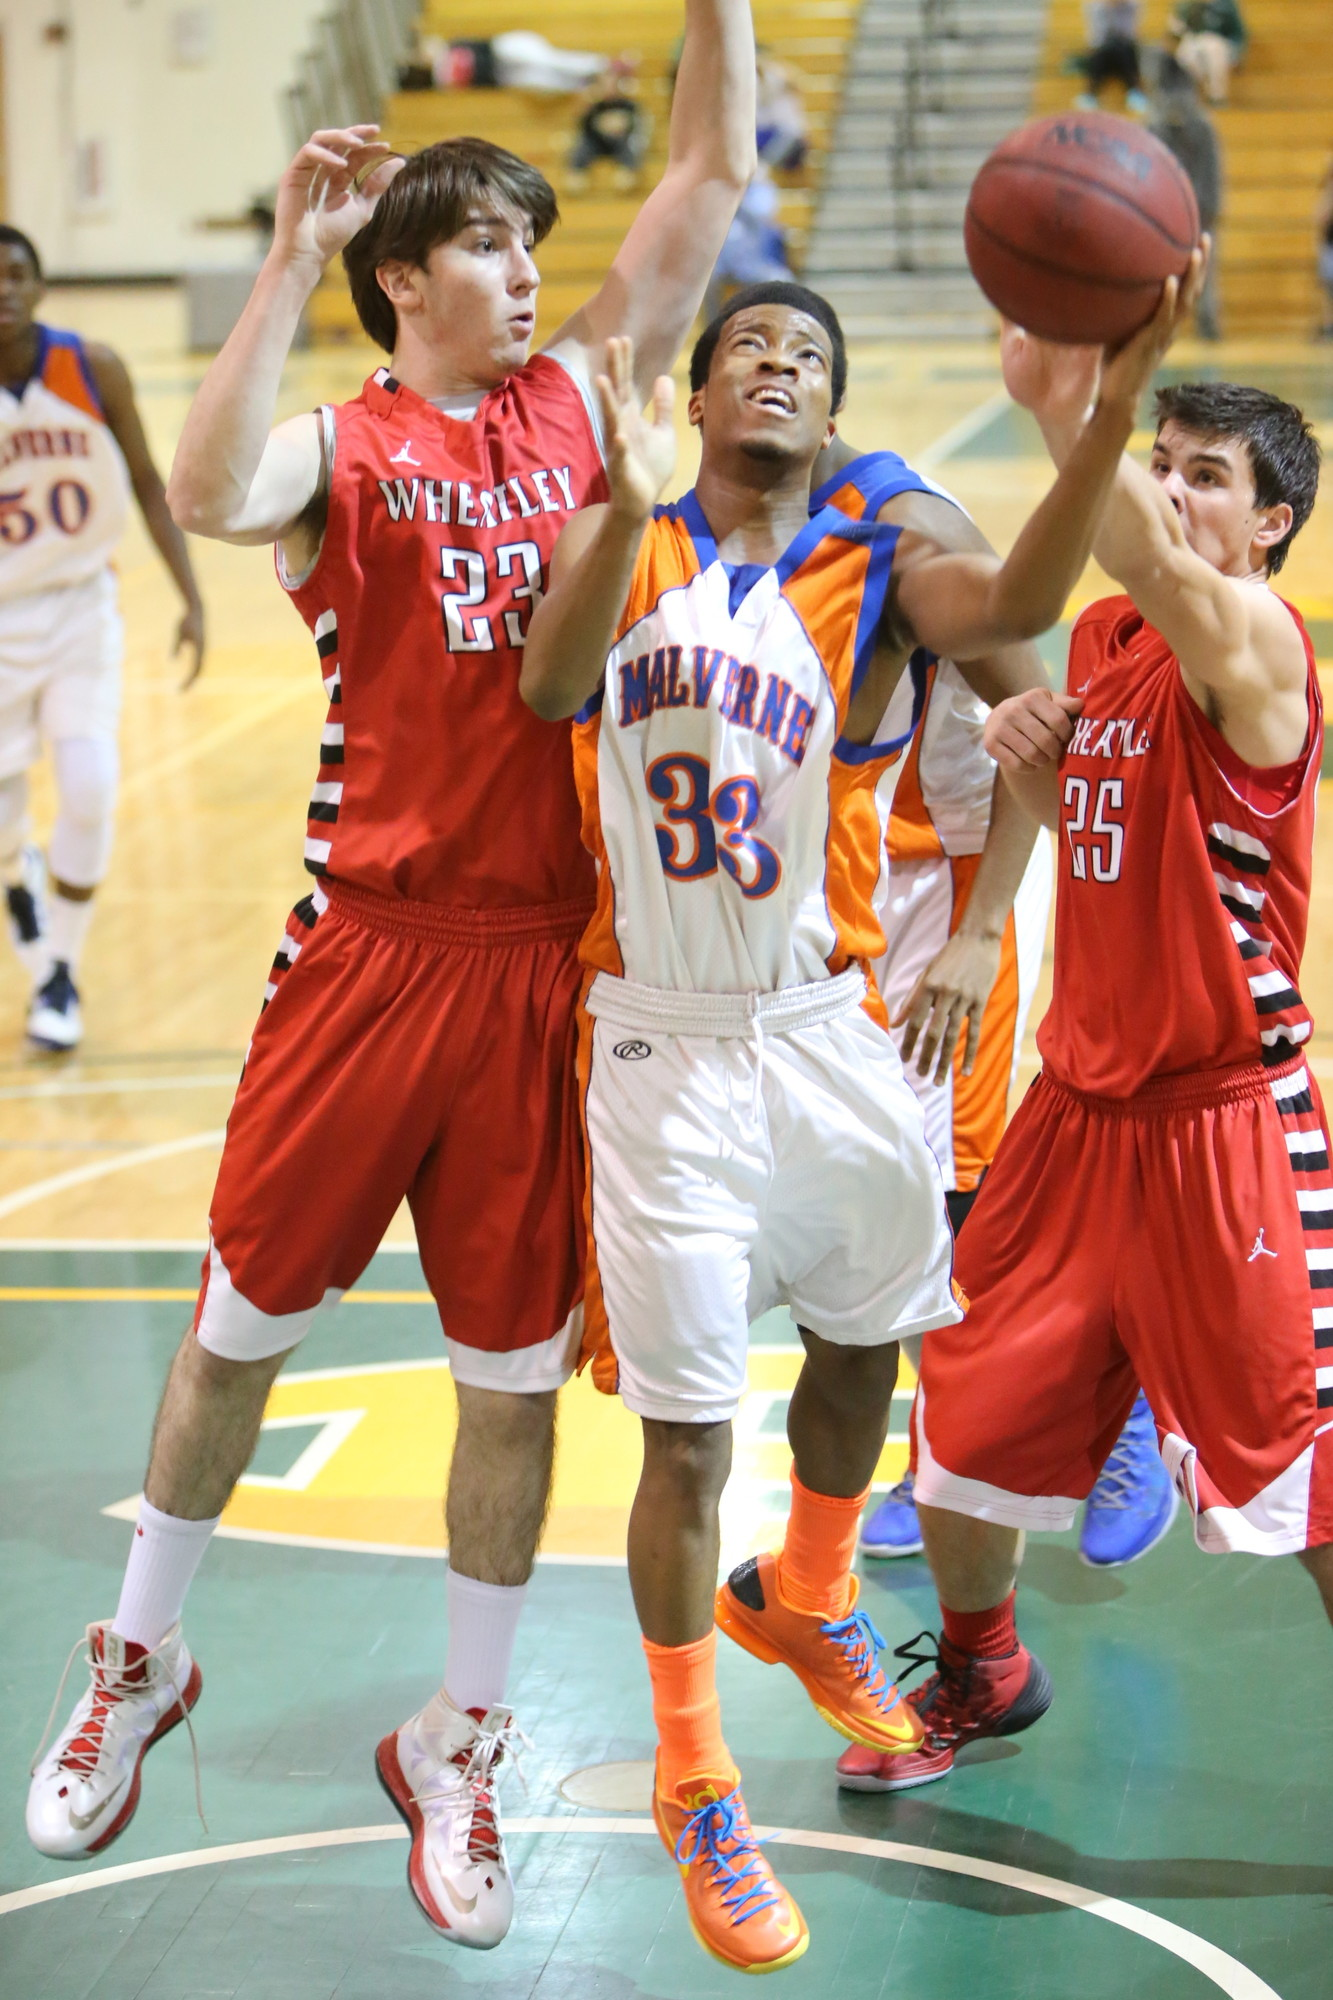 Malverne's Tyree Kingston, left, releases a shot between two Wheatley defenders.